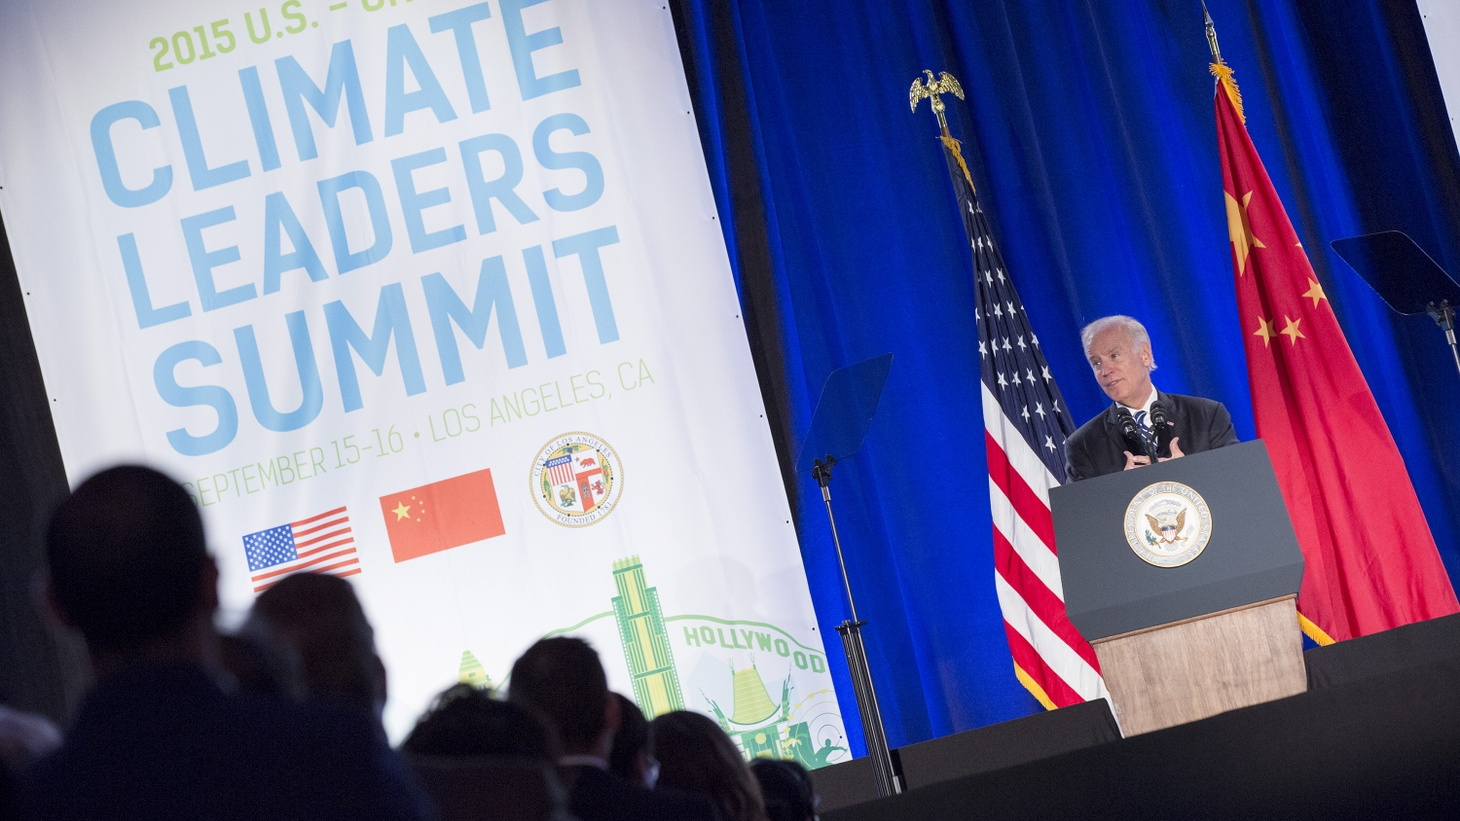 Joe Biden speaks at the closing session of the US-China Climate Leaders Summit in Los Angeles, California September 16, 2015.